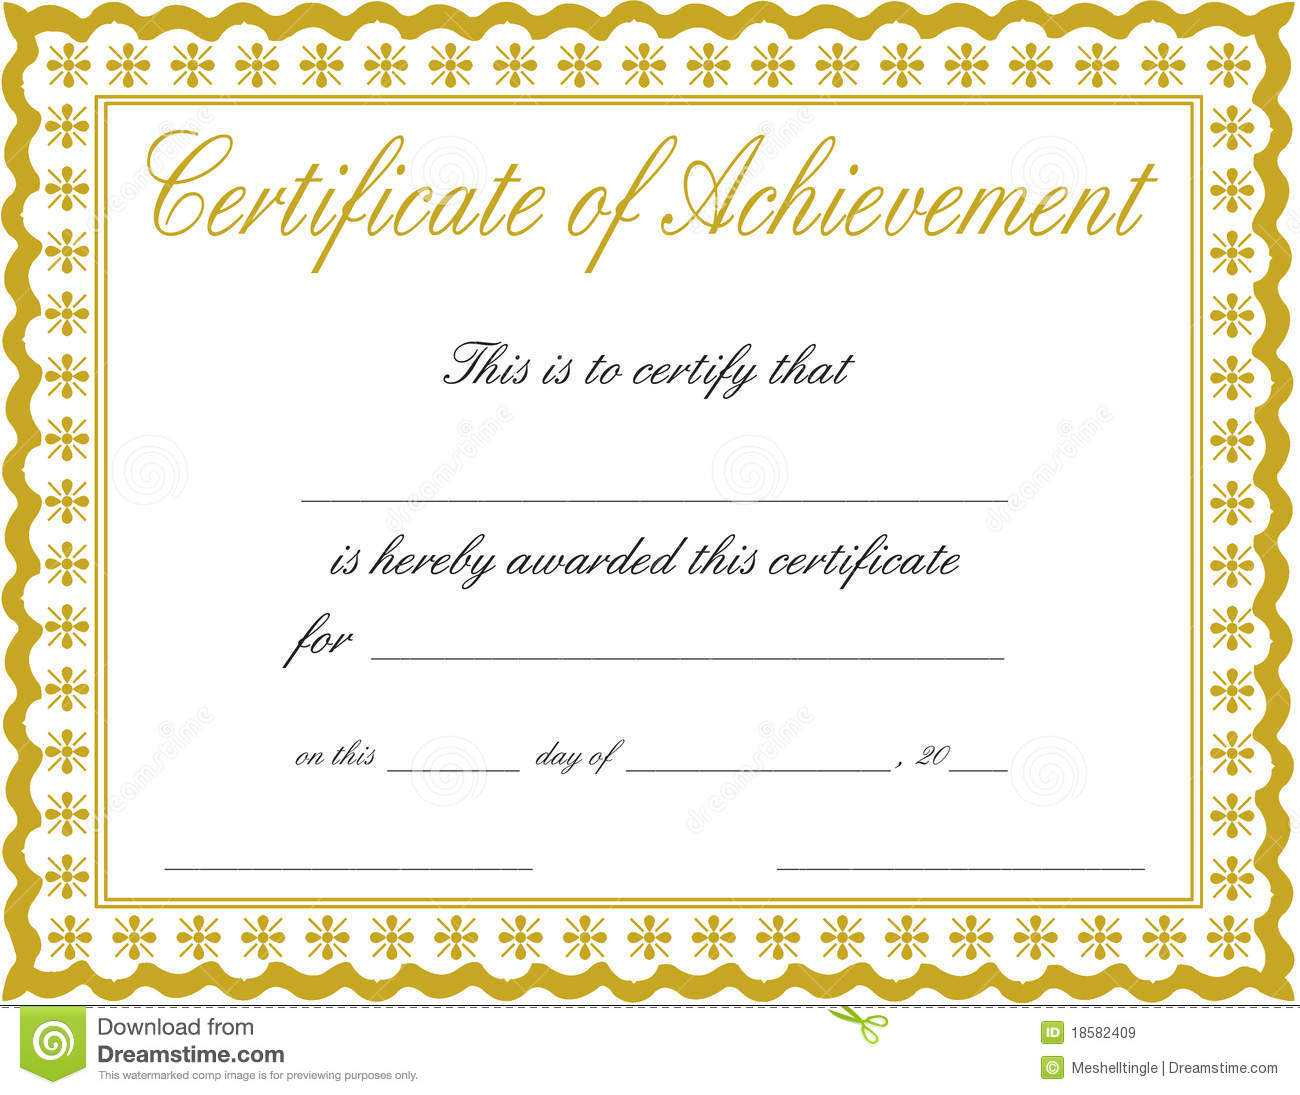 011 Free Printable Certificate Of Achievement Template Blank Throughout Free Printable Certificate Of Achievement Template